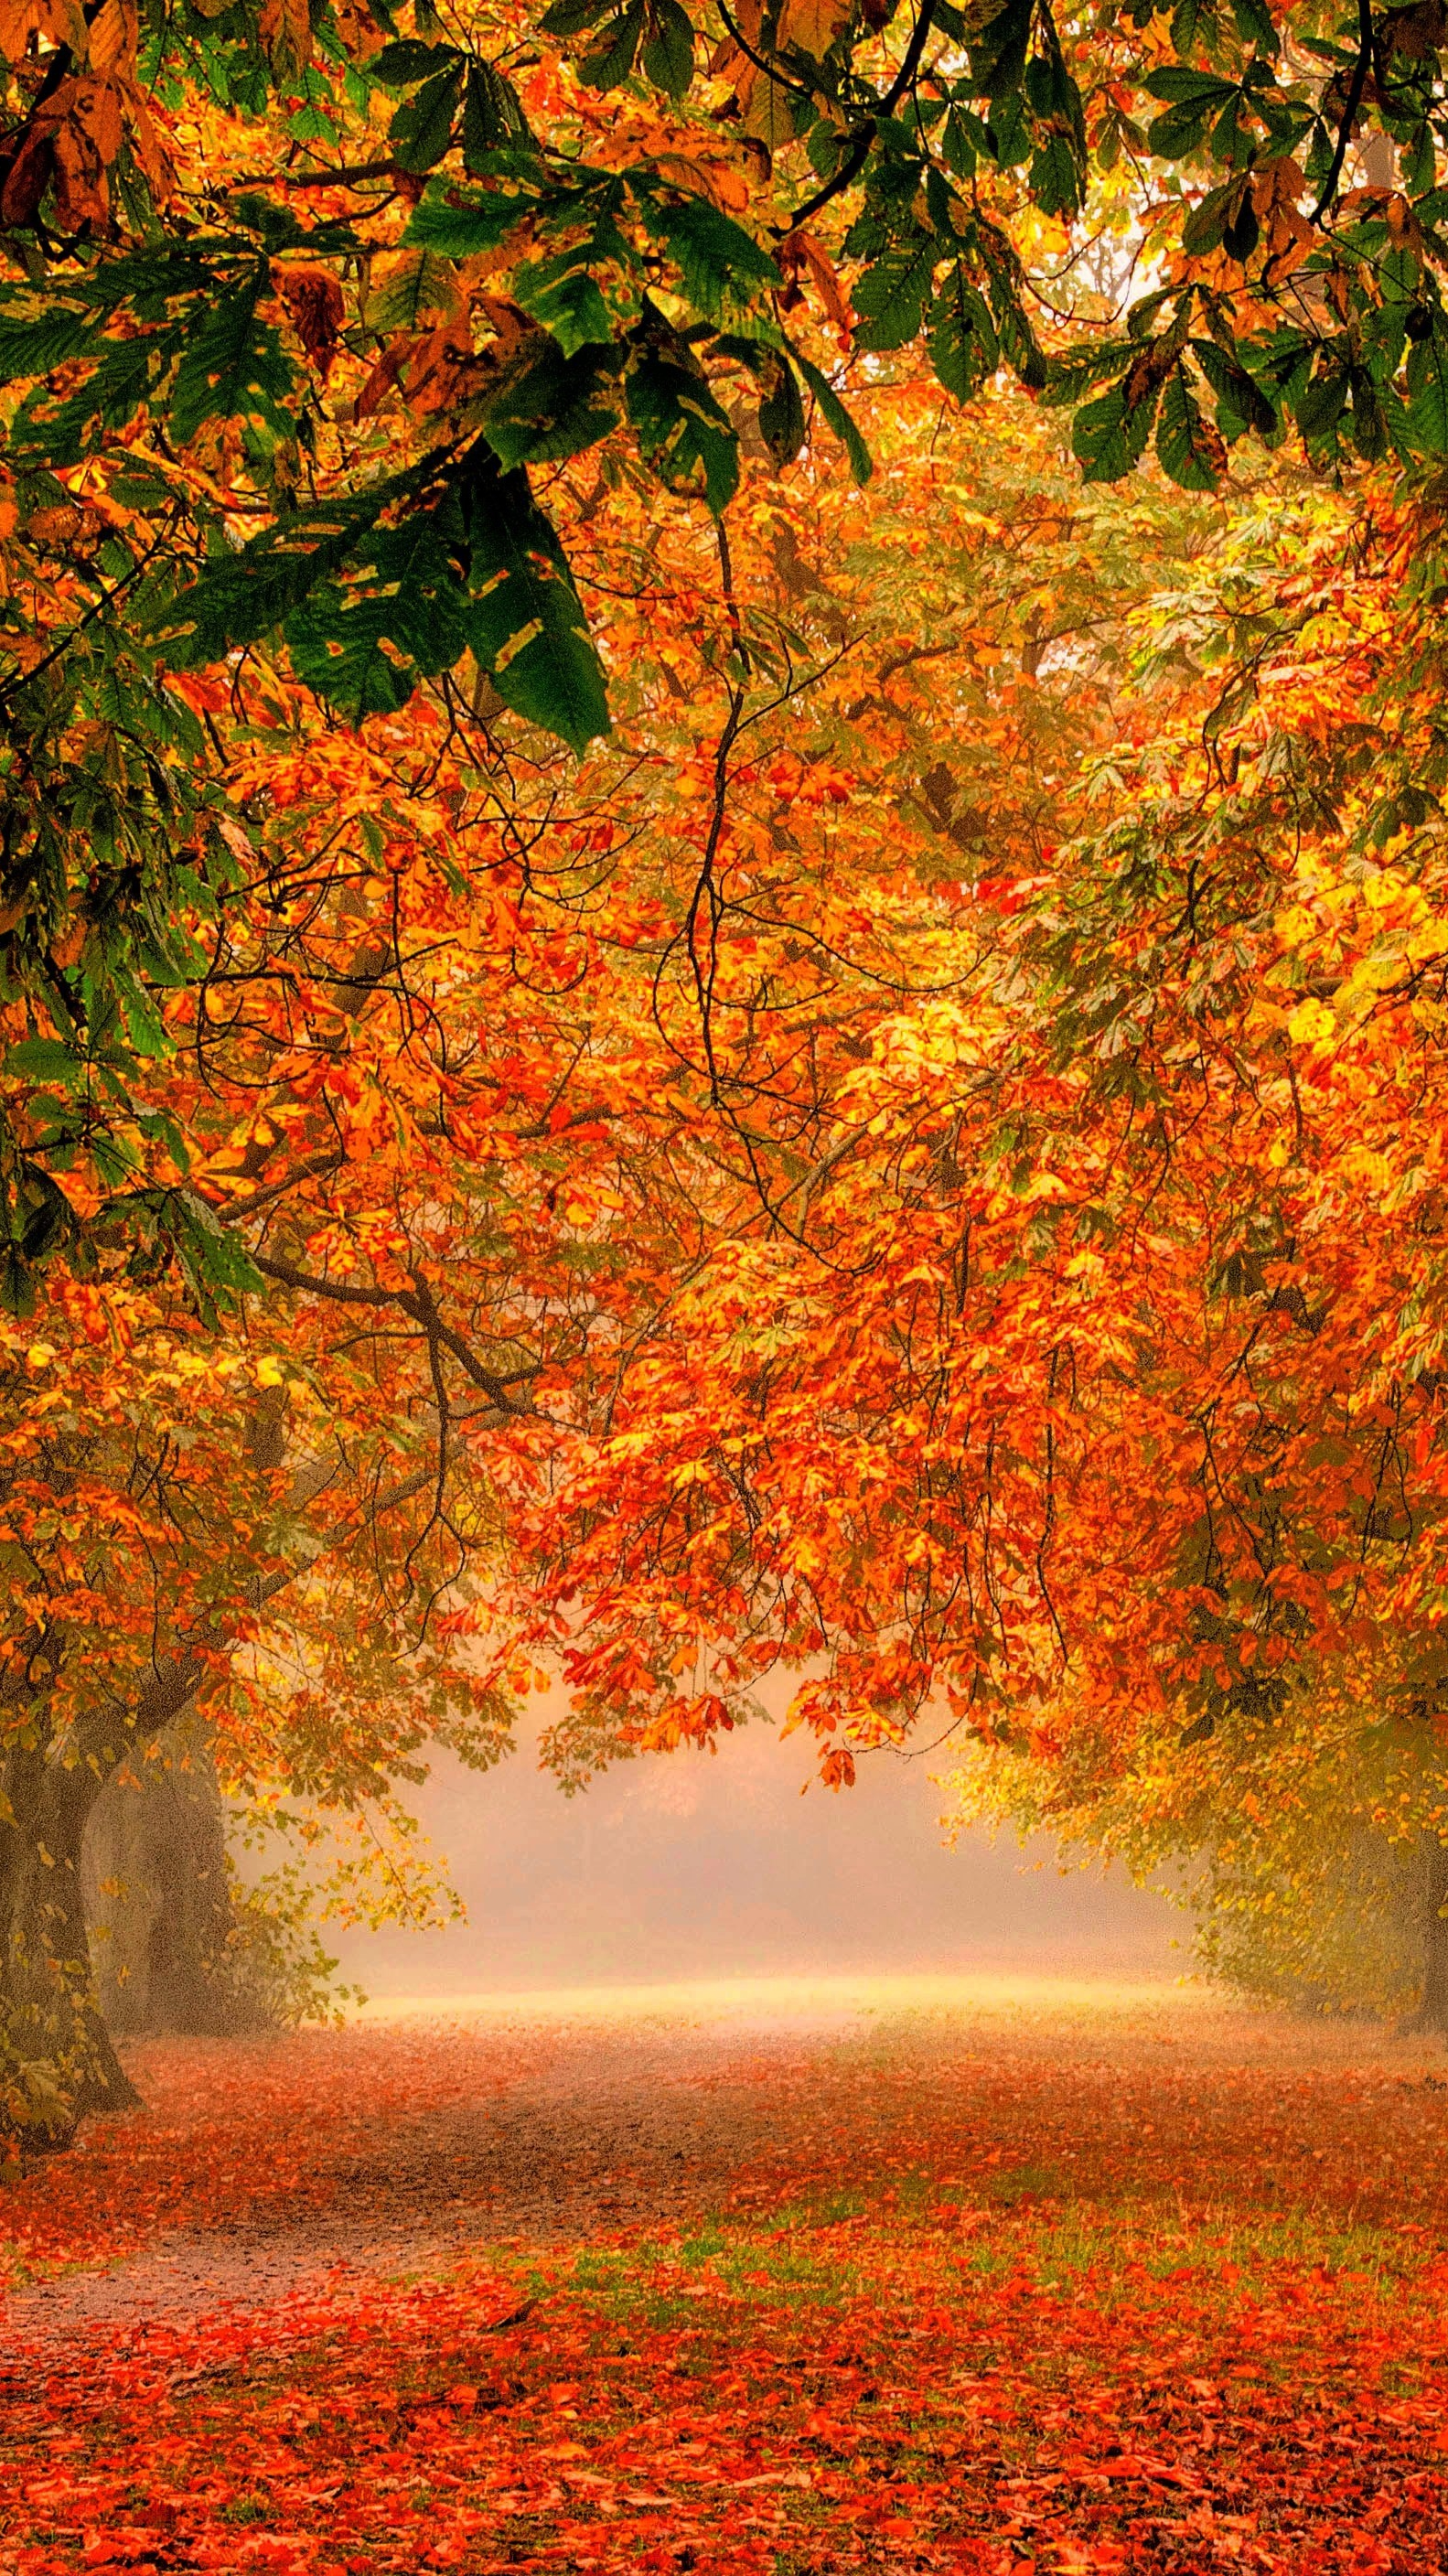 Fall Flowers Wallpaper Backgrounds Forest Nature Park Colorful Leaves Iphone Wallpaper